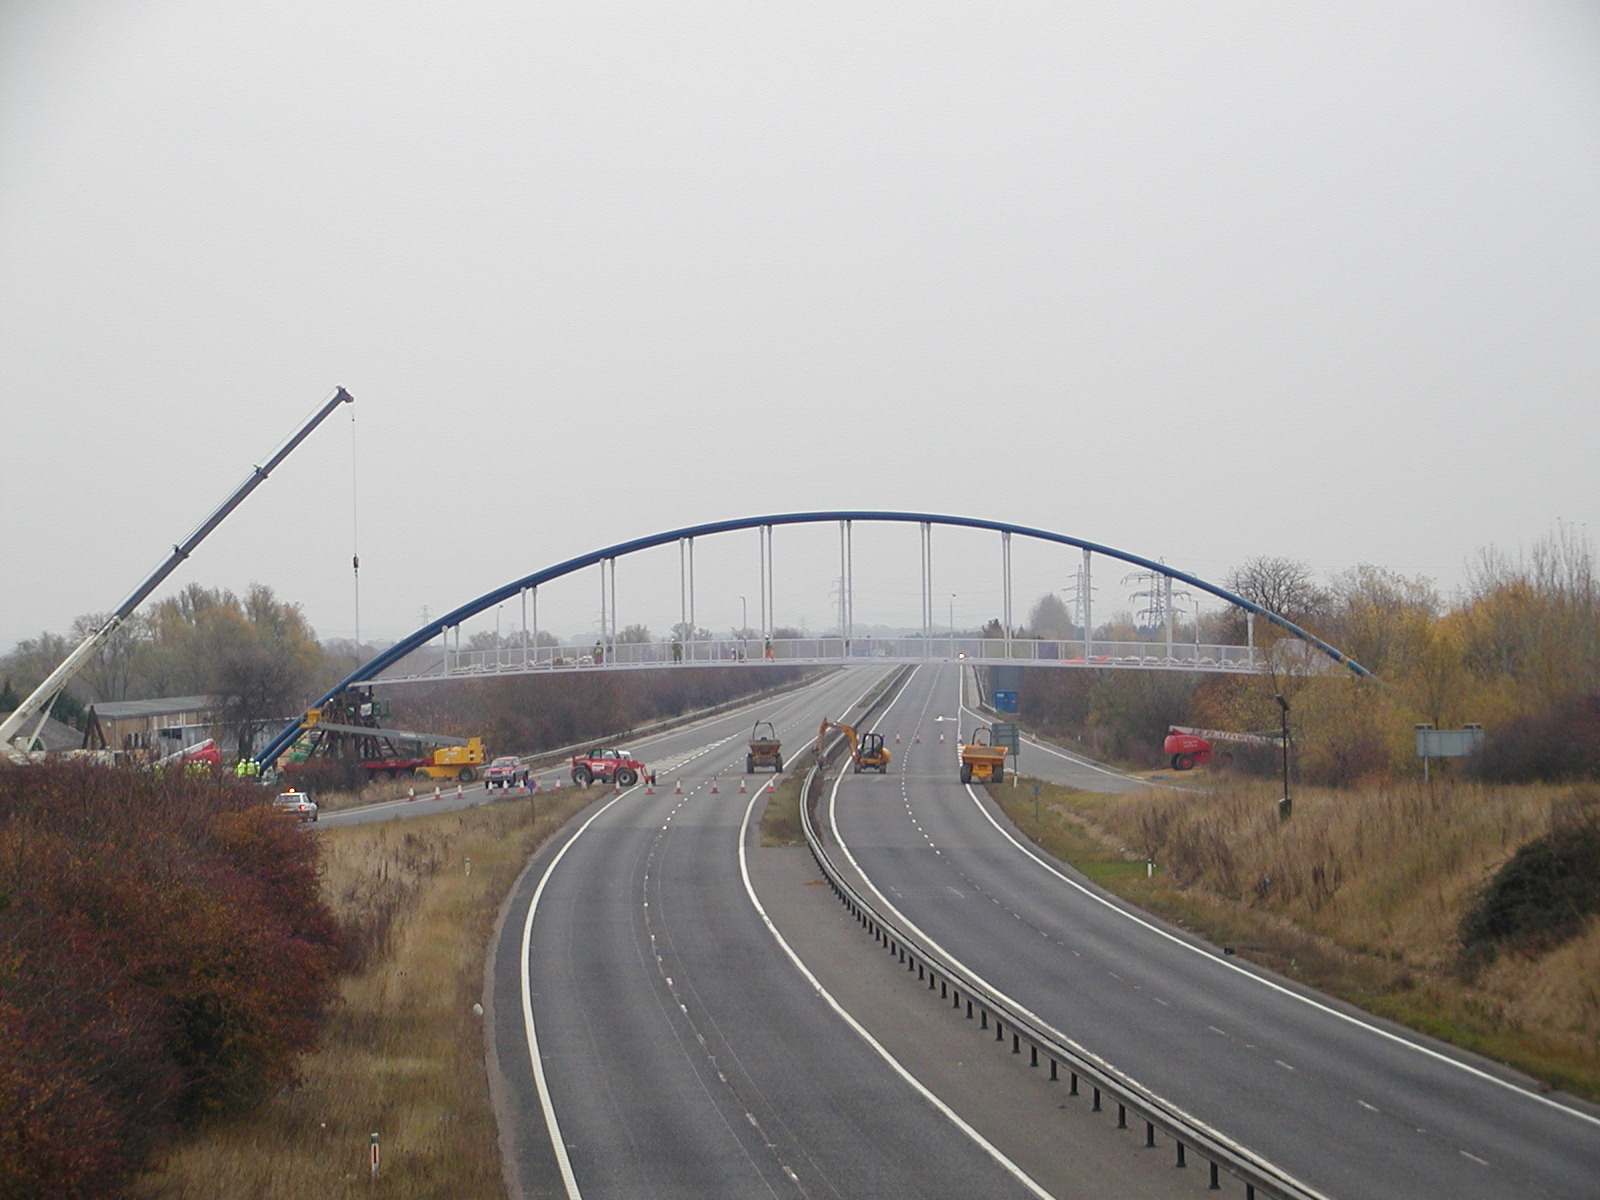 The Bridge in Place